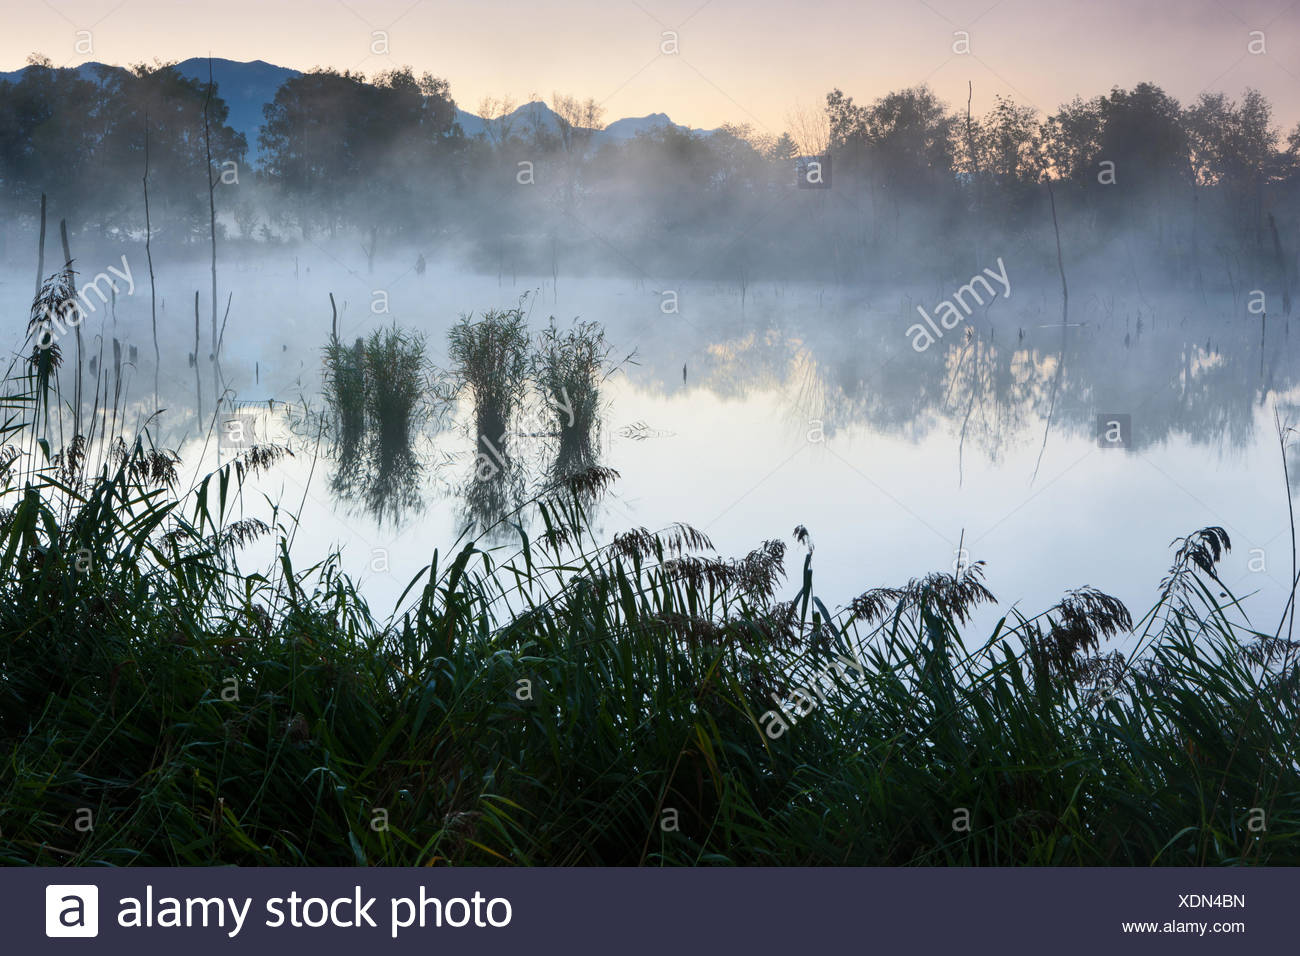 Oberriet, pit, Loo, Switzerland, Europe, canton St. Gallen, Rhine Valley, former clay pit, reed, morning fog - Stock Image